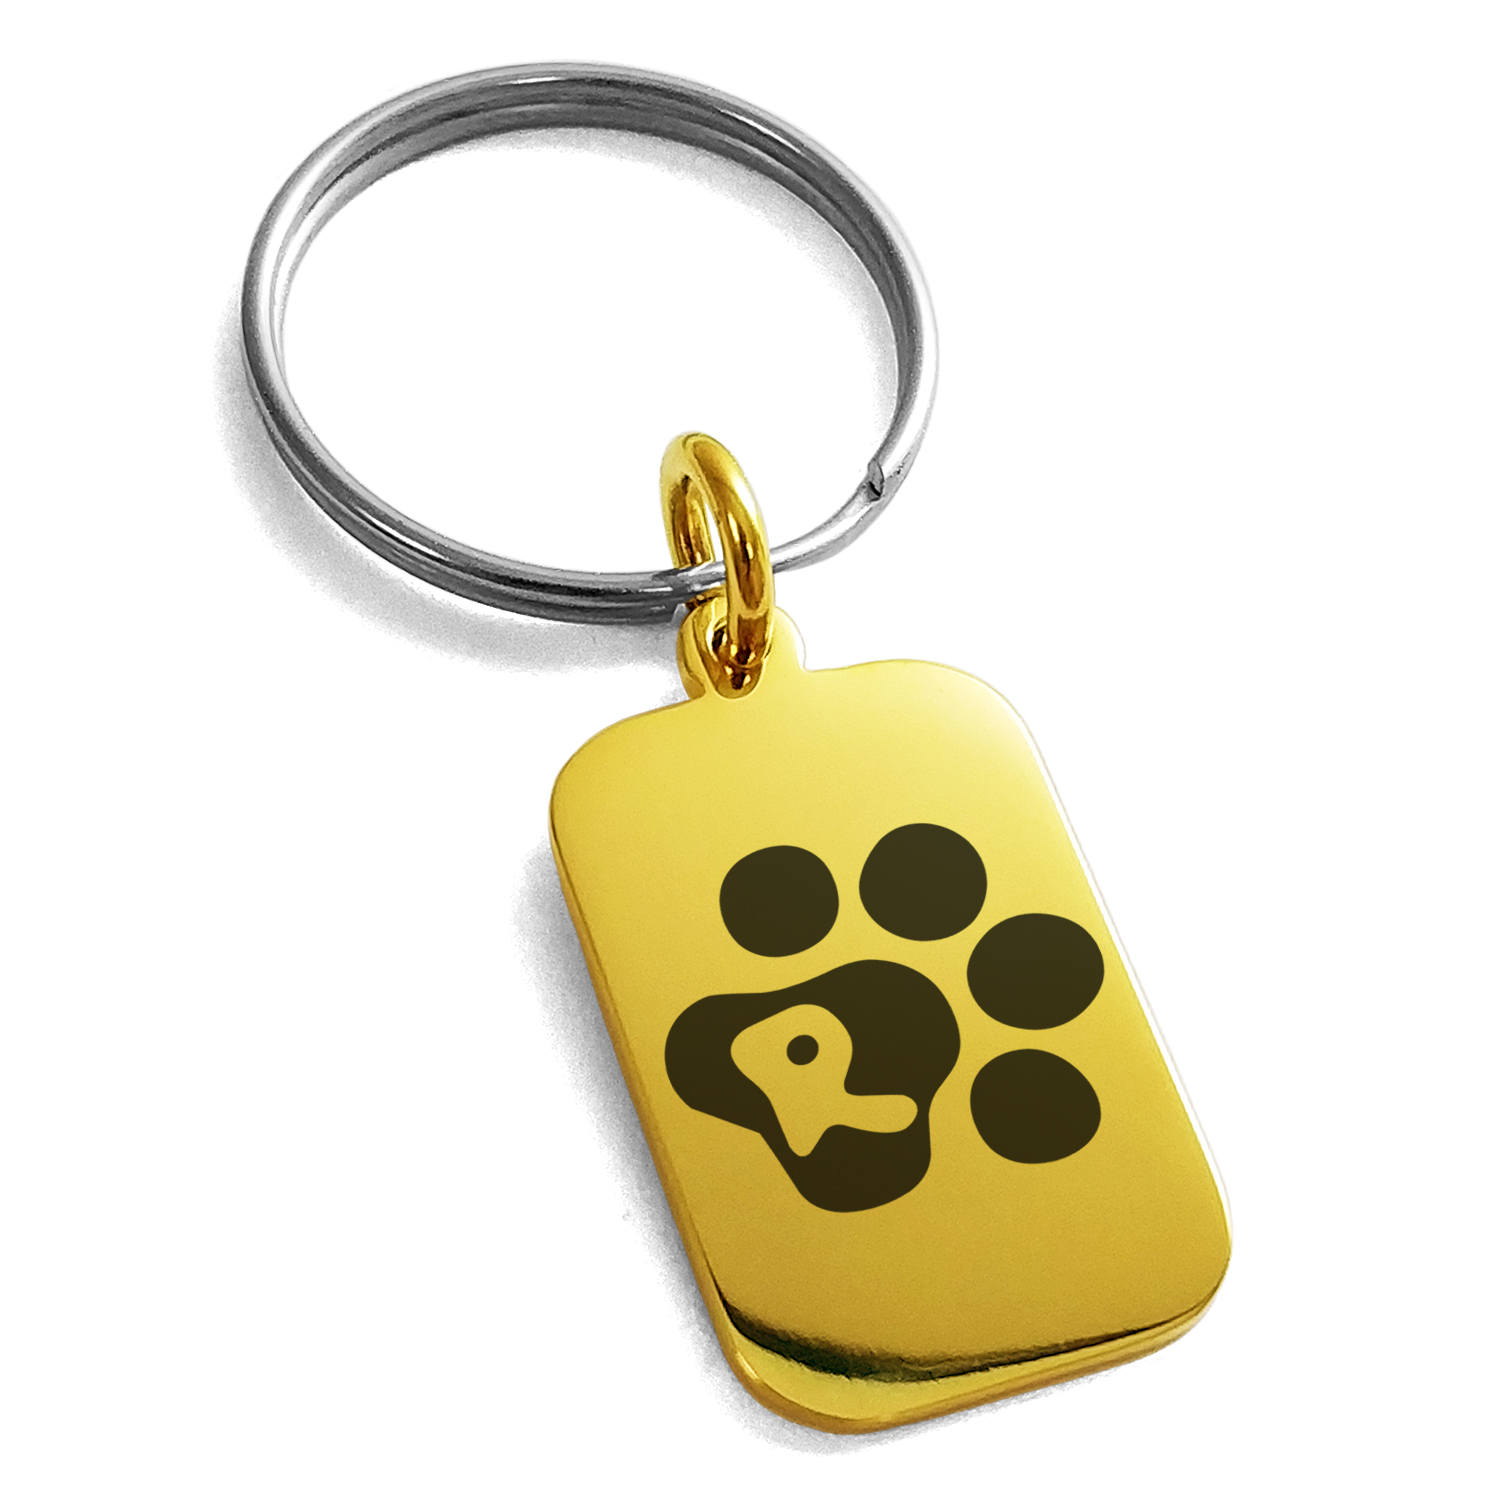 Stainless Steel Letter R Initial Cat Dog Paws Monogram Engraved Small Rectangle Dog Tag Charm Keychain Keyring